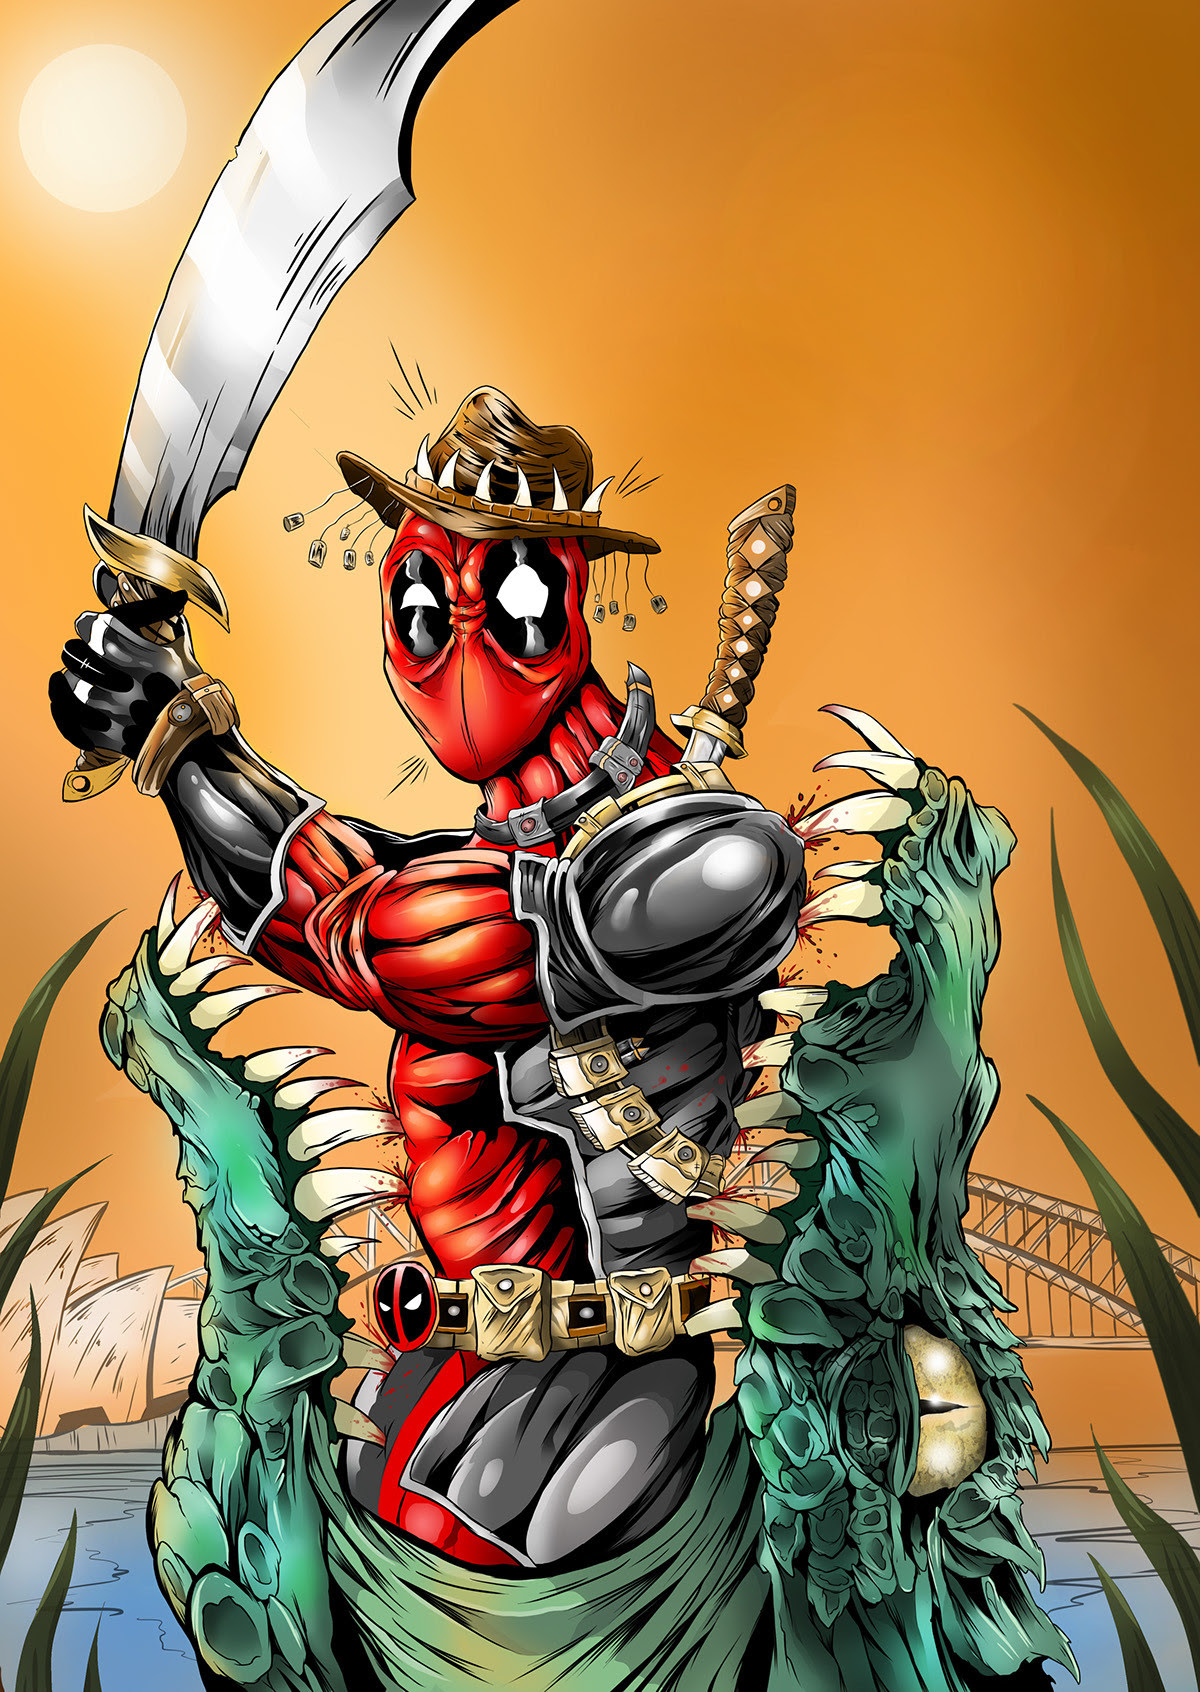 Crocodile Dundee x Deadpool by Blake Cantrell